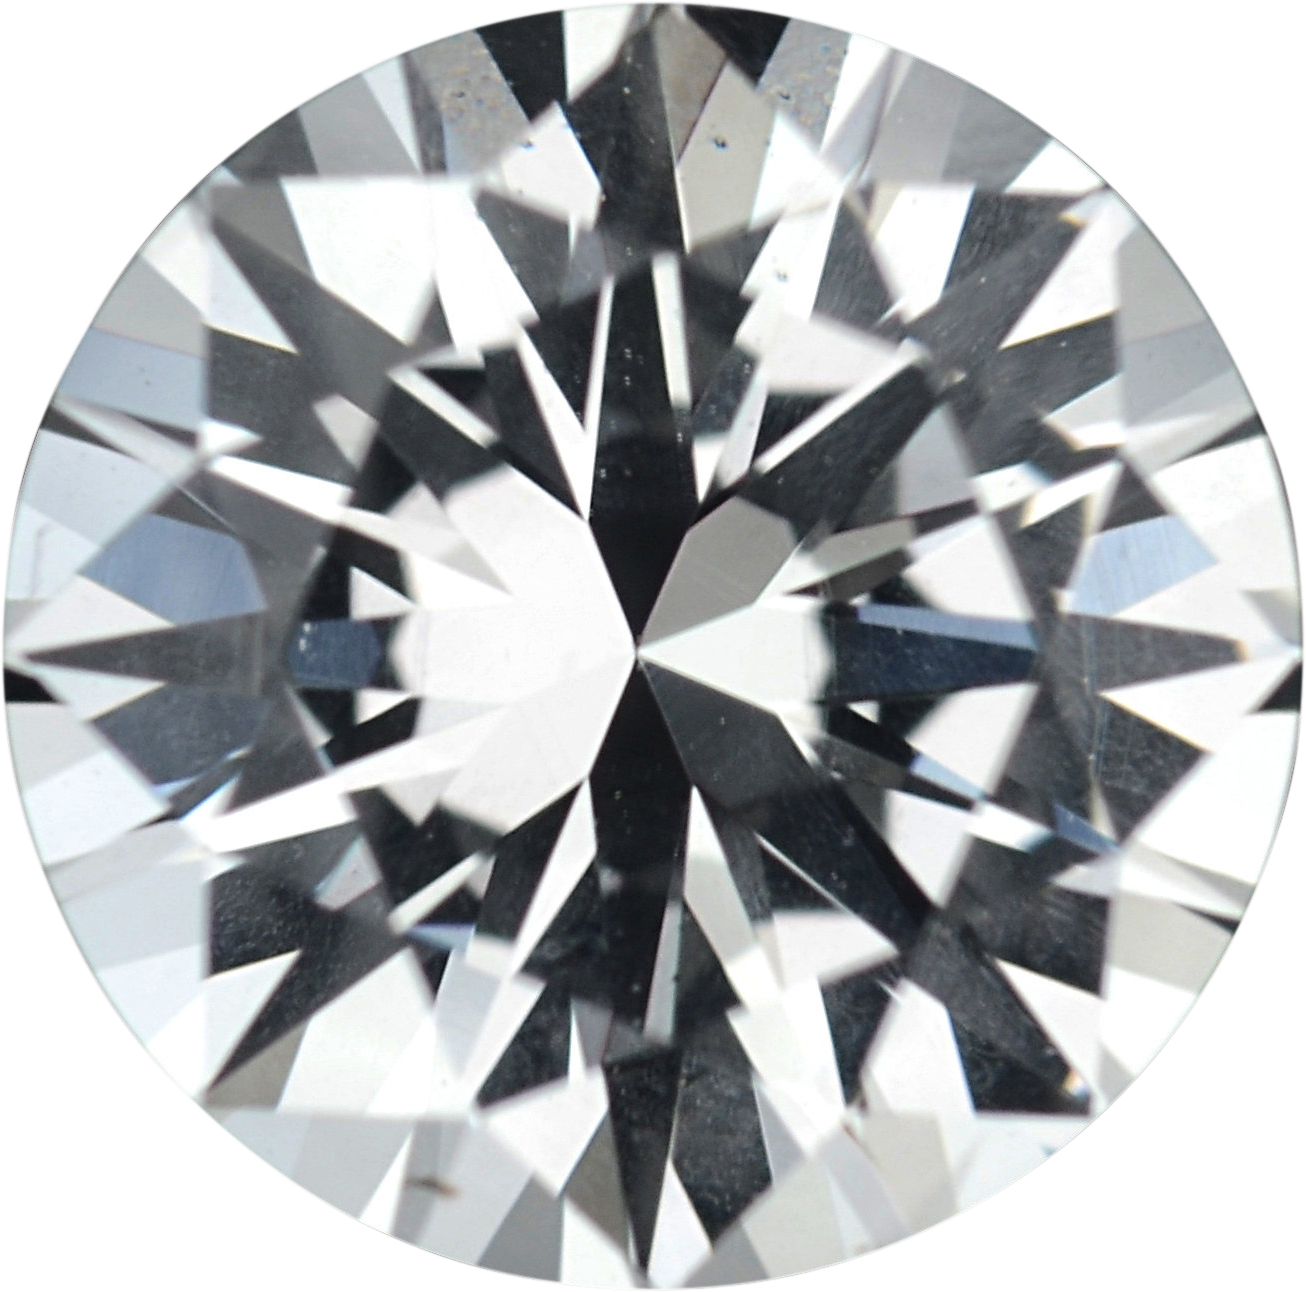 1.27 carats White Loose Sapphire Gemstone in Round Cut, 6.69 mm